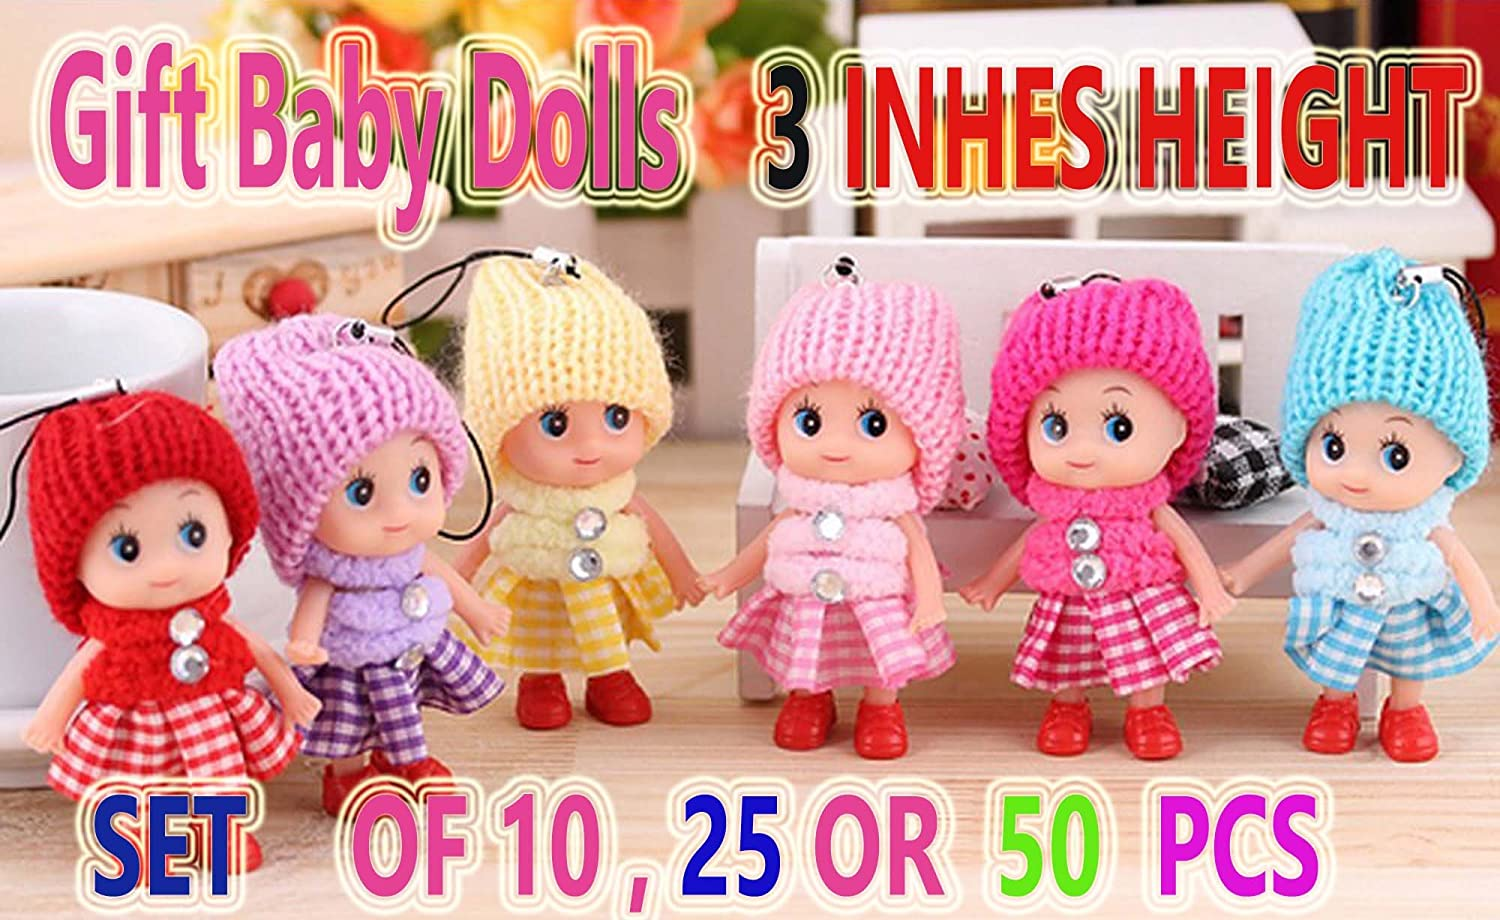 GOOD FOR PARTY CHRISTMAS DECORATION SET OF 50 BABY DOLLS KEY CHAIN